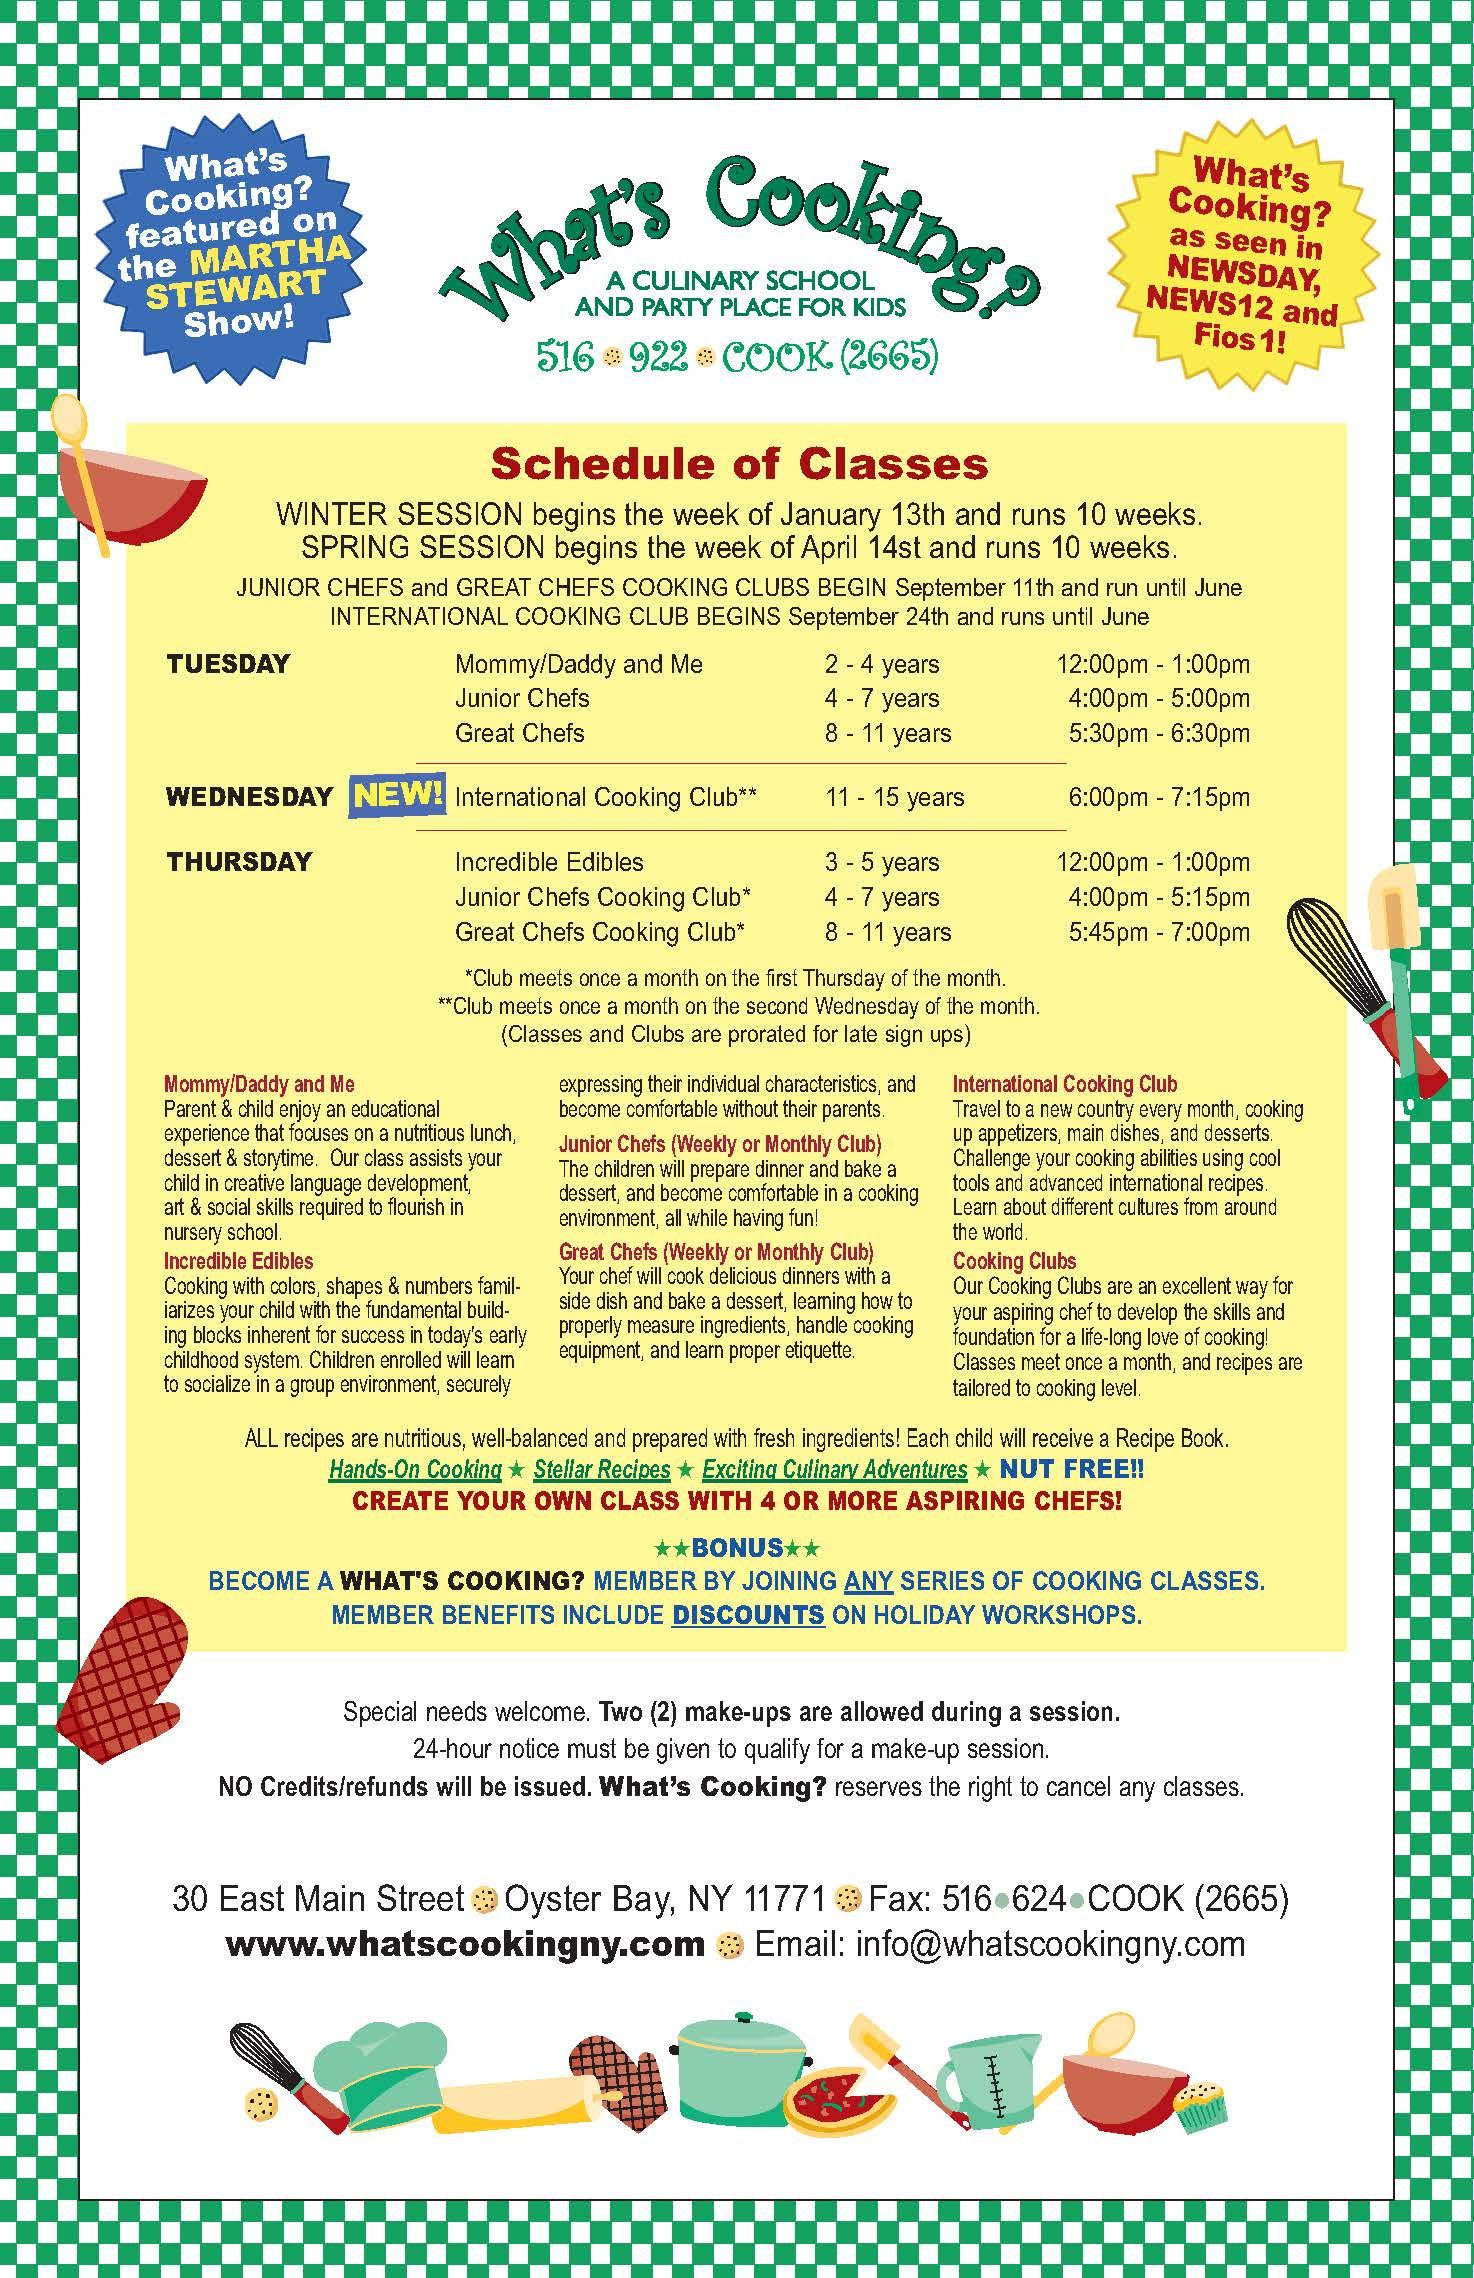 Long Island Culinary Classes Scout Cooking Badges And Summer Camp For Children Class Schedule Nassau County Culinary Classes What To Cook Baking Classes